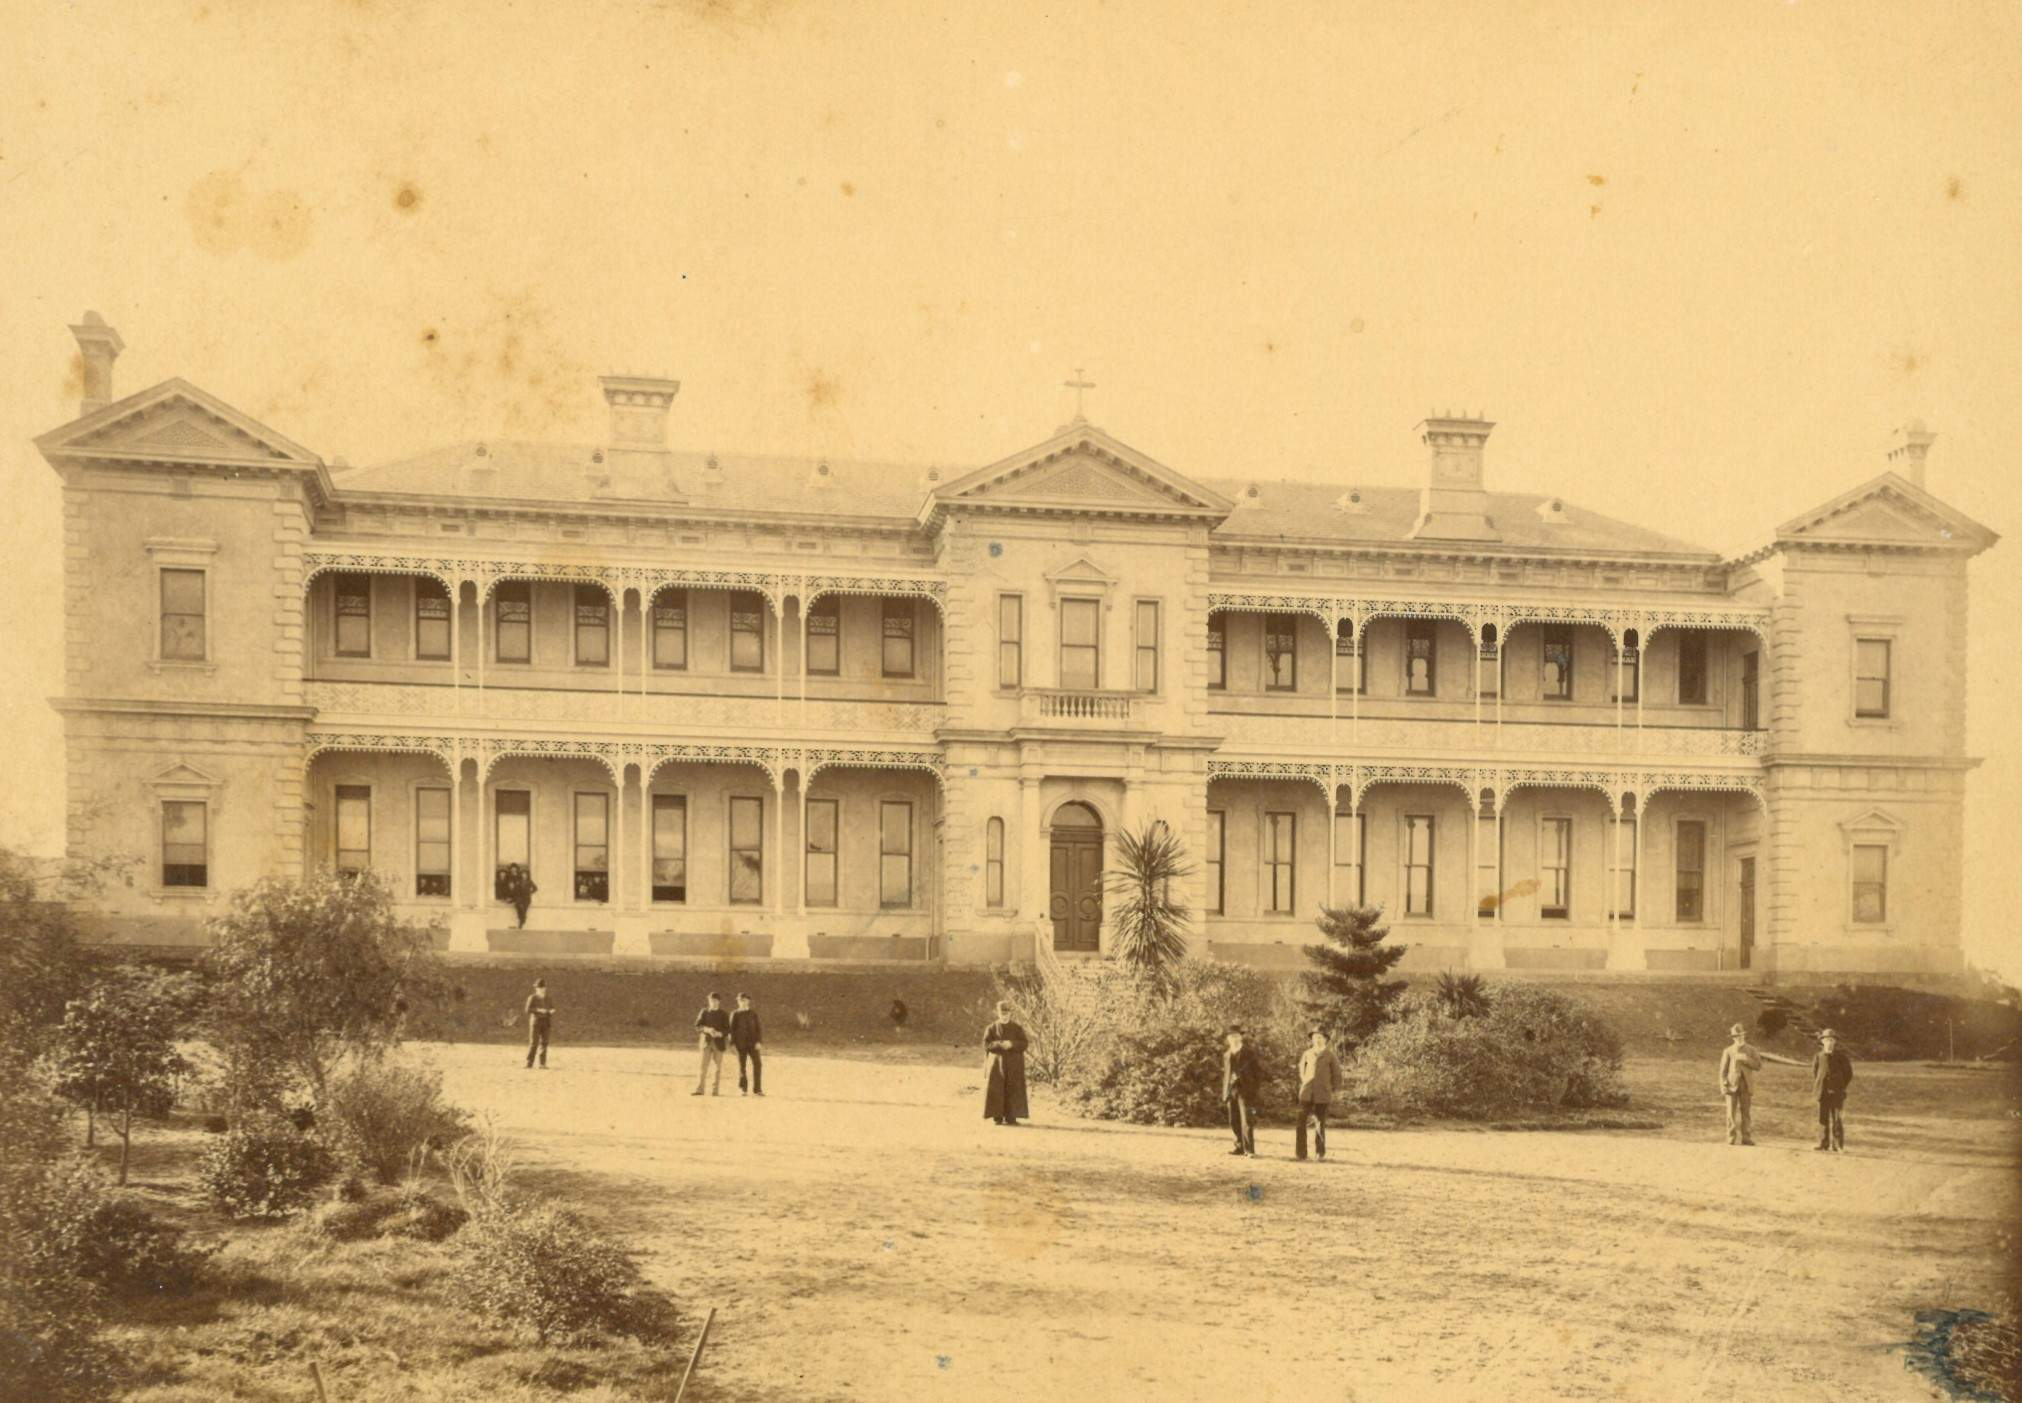 Earliest Image of Xavier College - our history